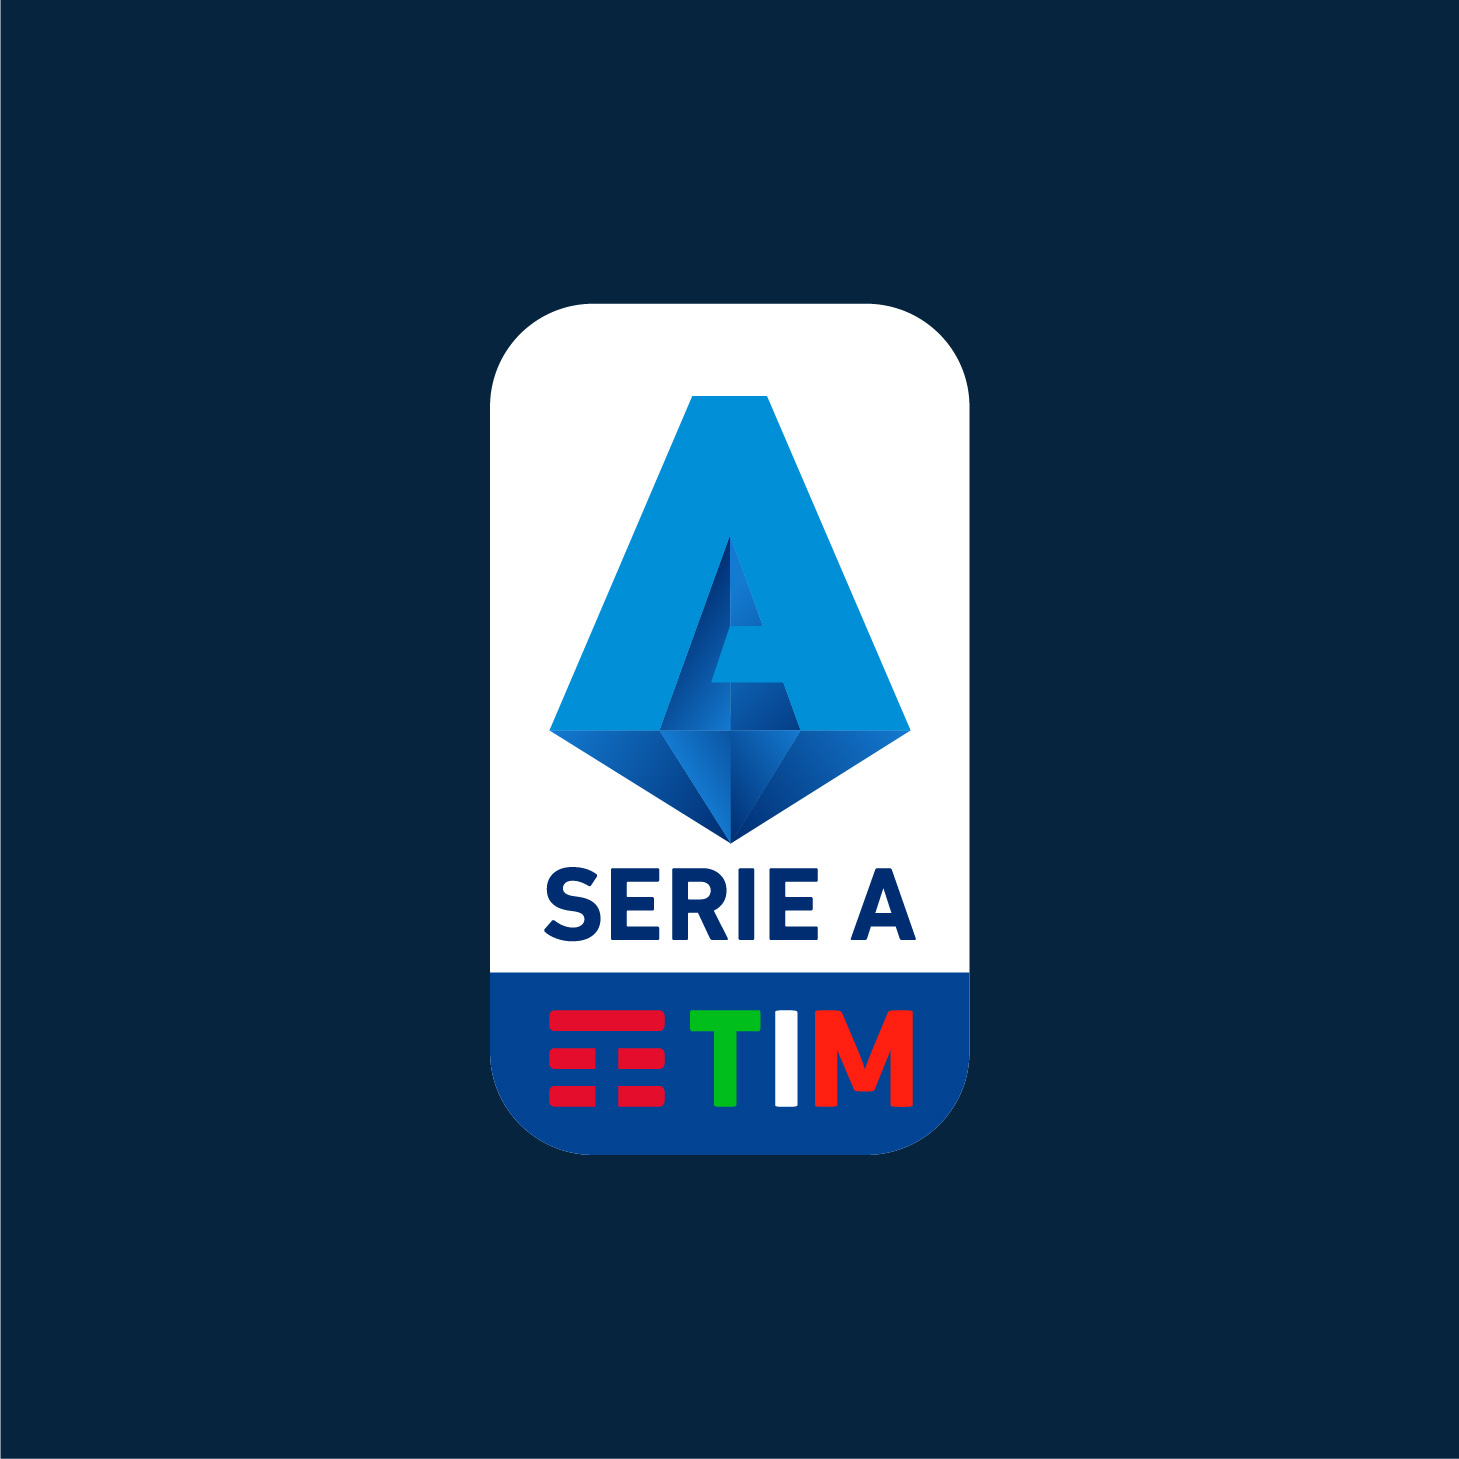 Serie A Weitere